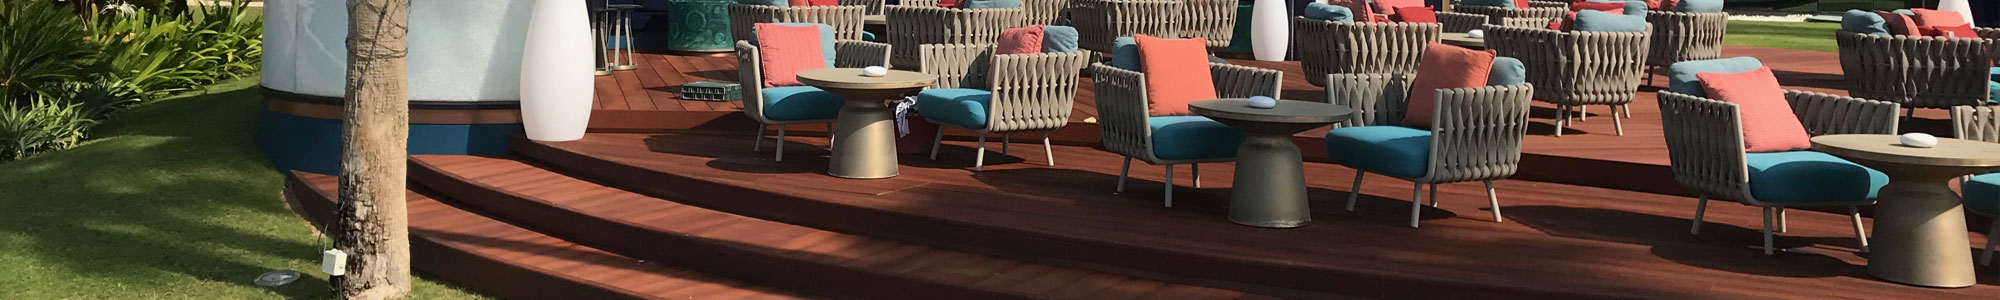 Enhanced Grain Jarrah Millboard Decking